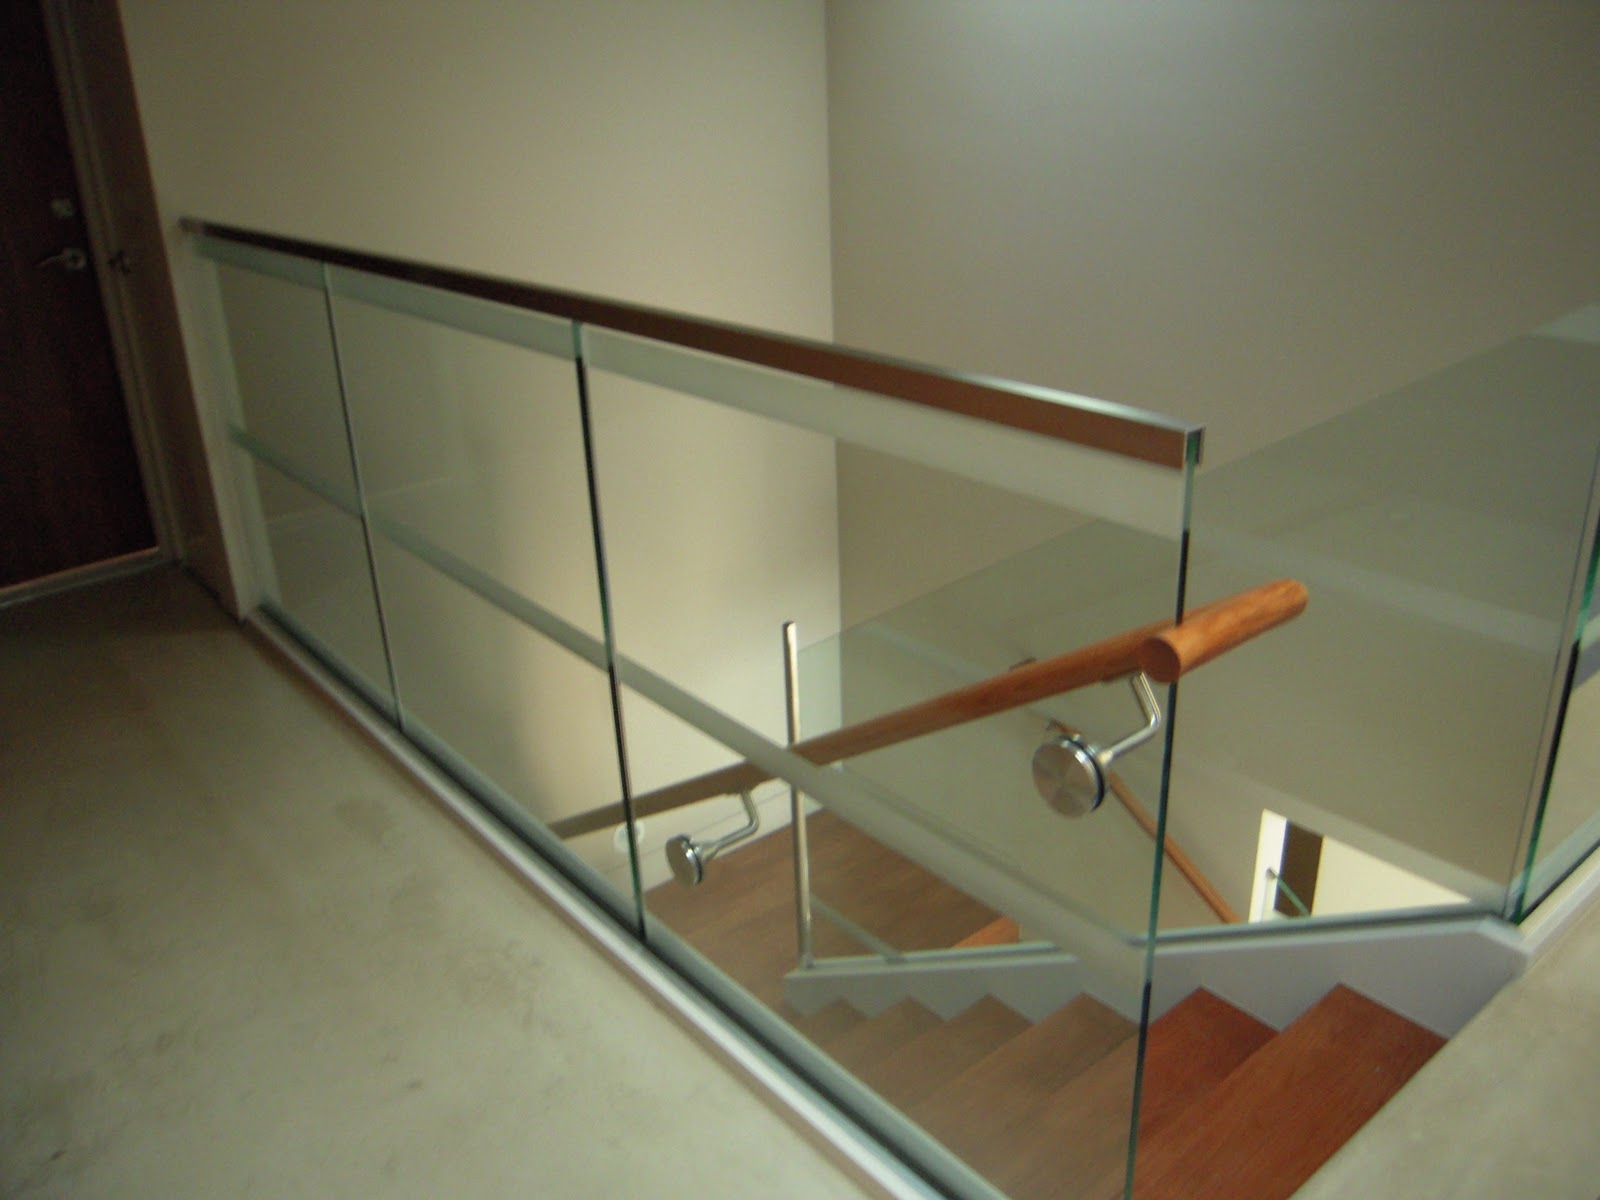 Glass Stair Railings Interior: Glass Stair Rail With Glass Mount Railing Hardware • OT Glass